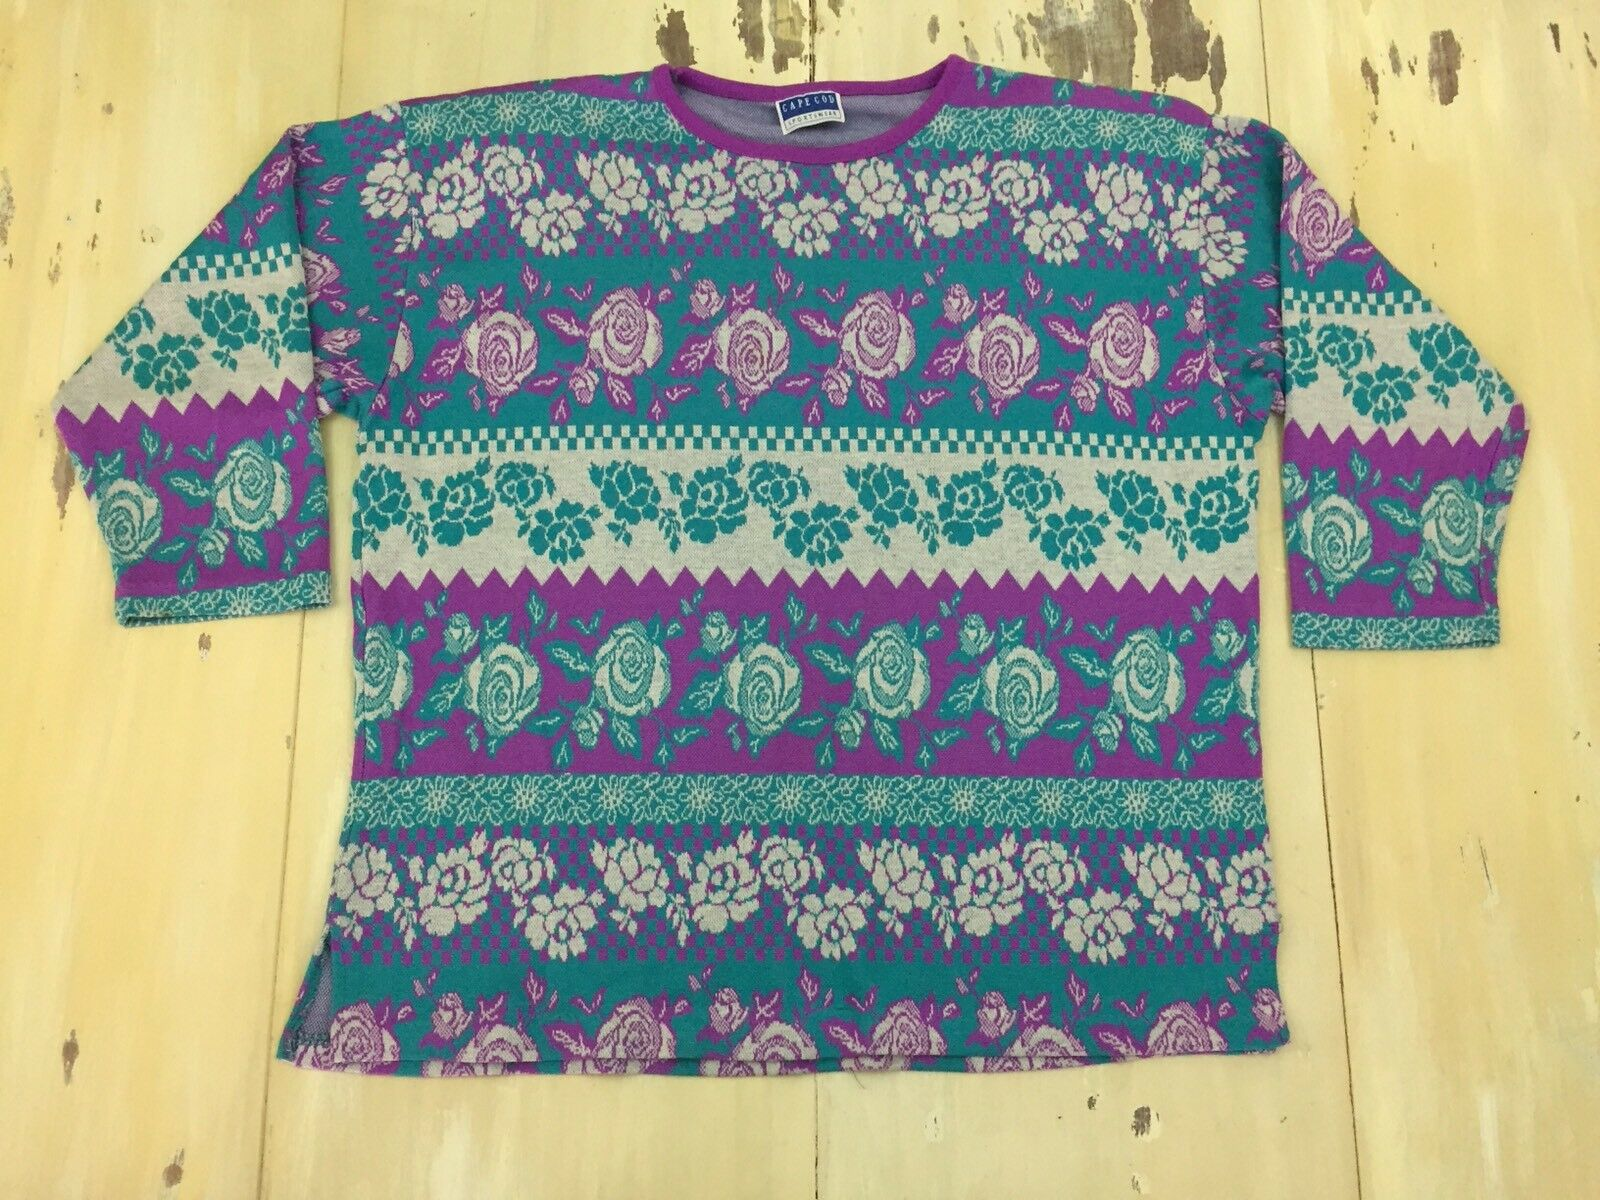 CAPE COD - FAIRY KEI SWEATER Vtg 80s-90s Pink & Teal pink Floral Print, Sz XL